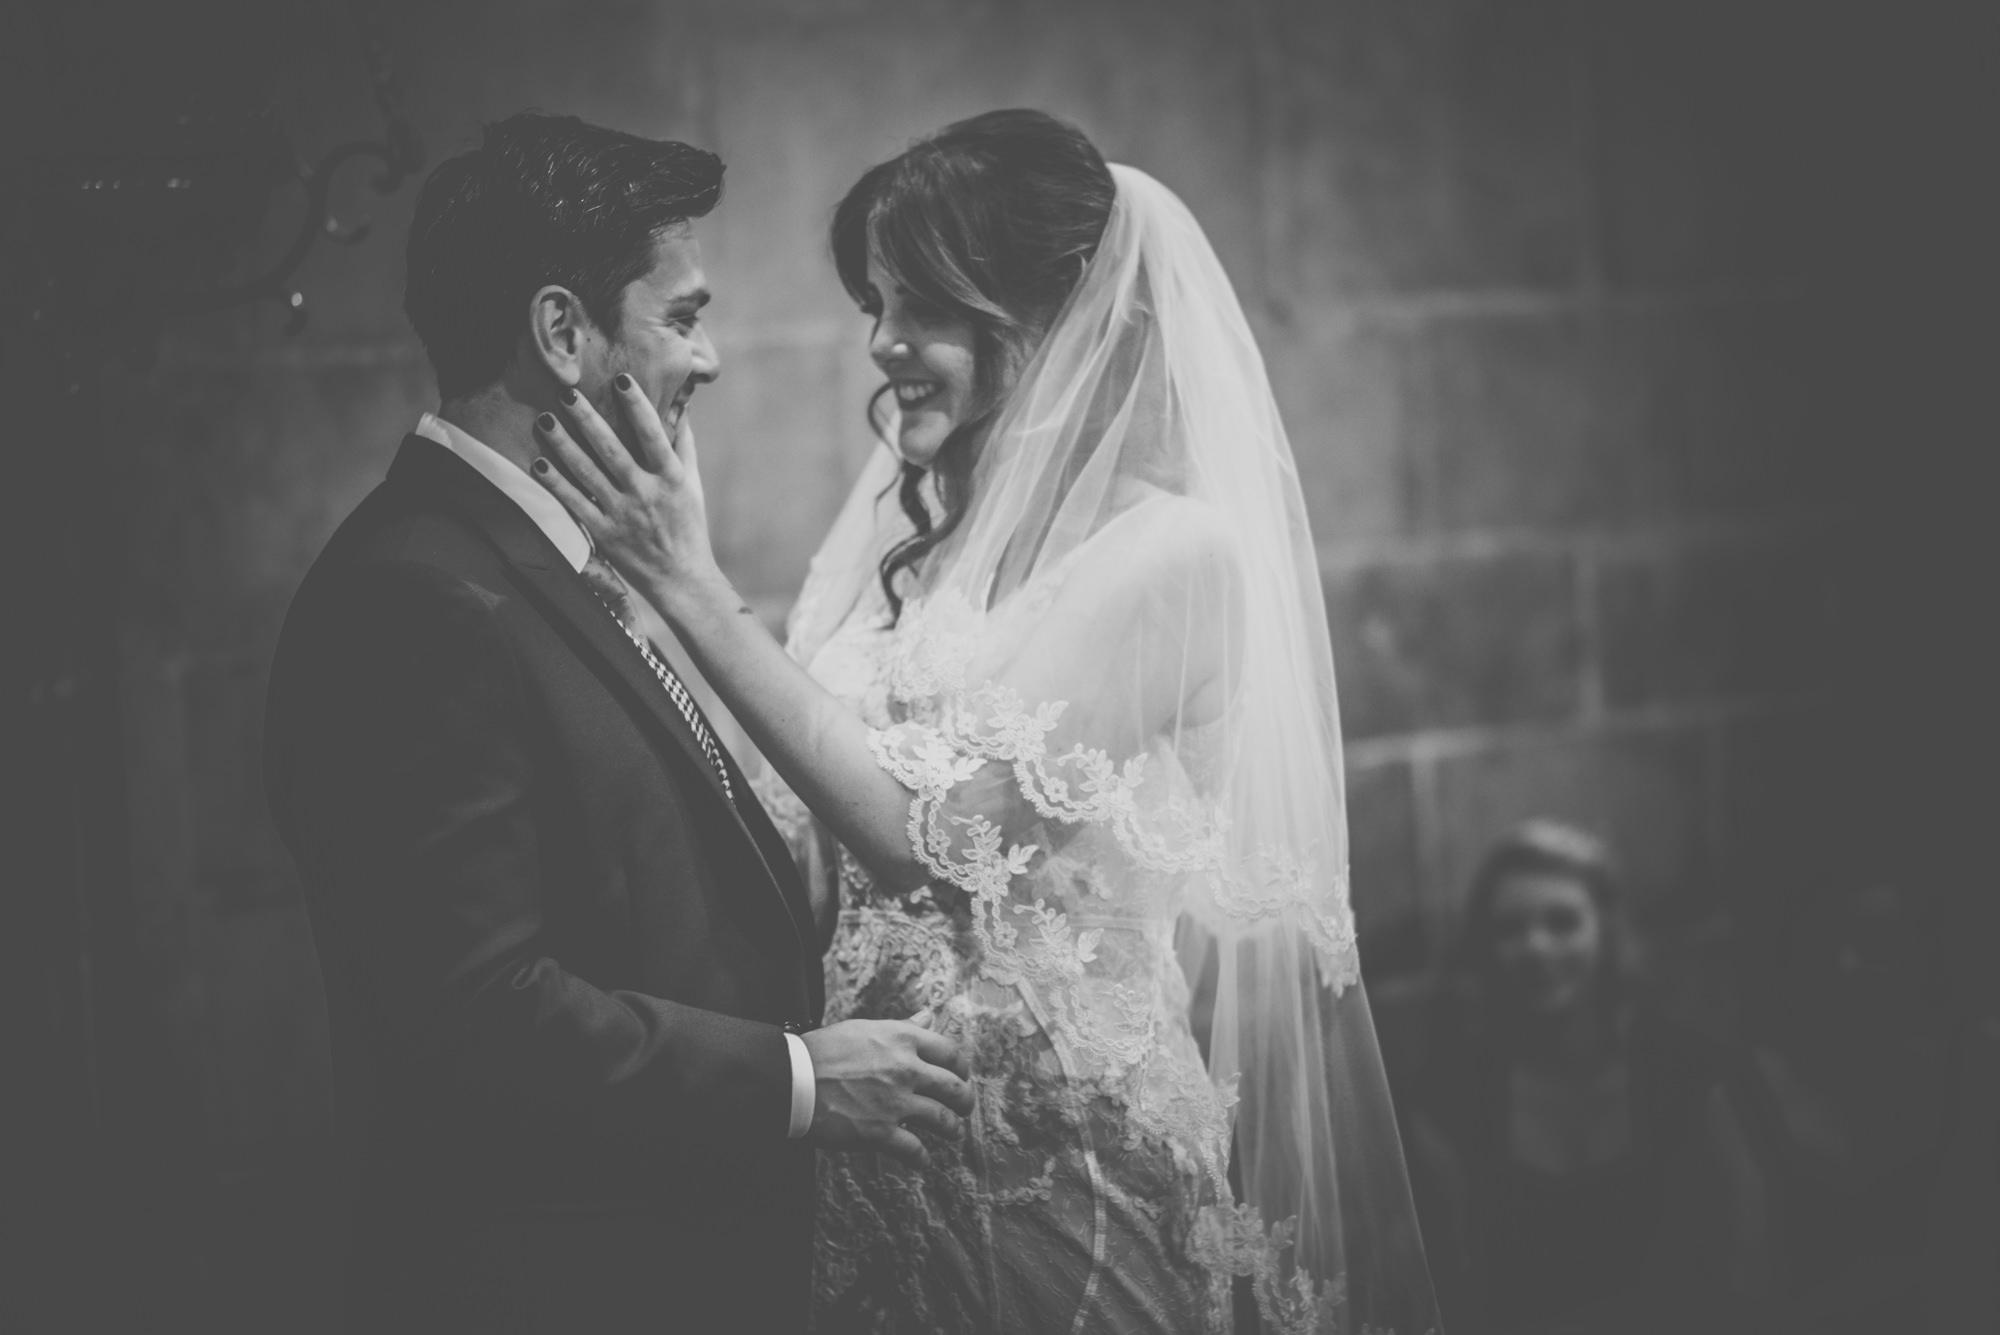 Amy-and-Andres-destination-wedding-in-Potes-Spain-Manu-Mendoza-Wedding-Photography-296.jpg